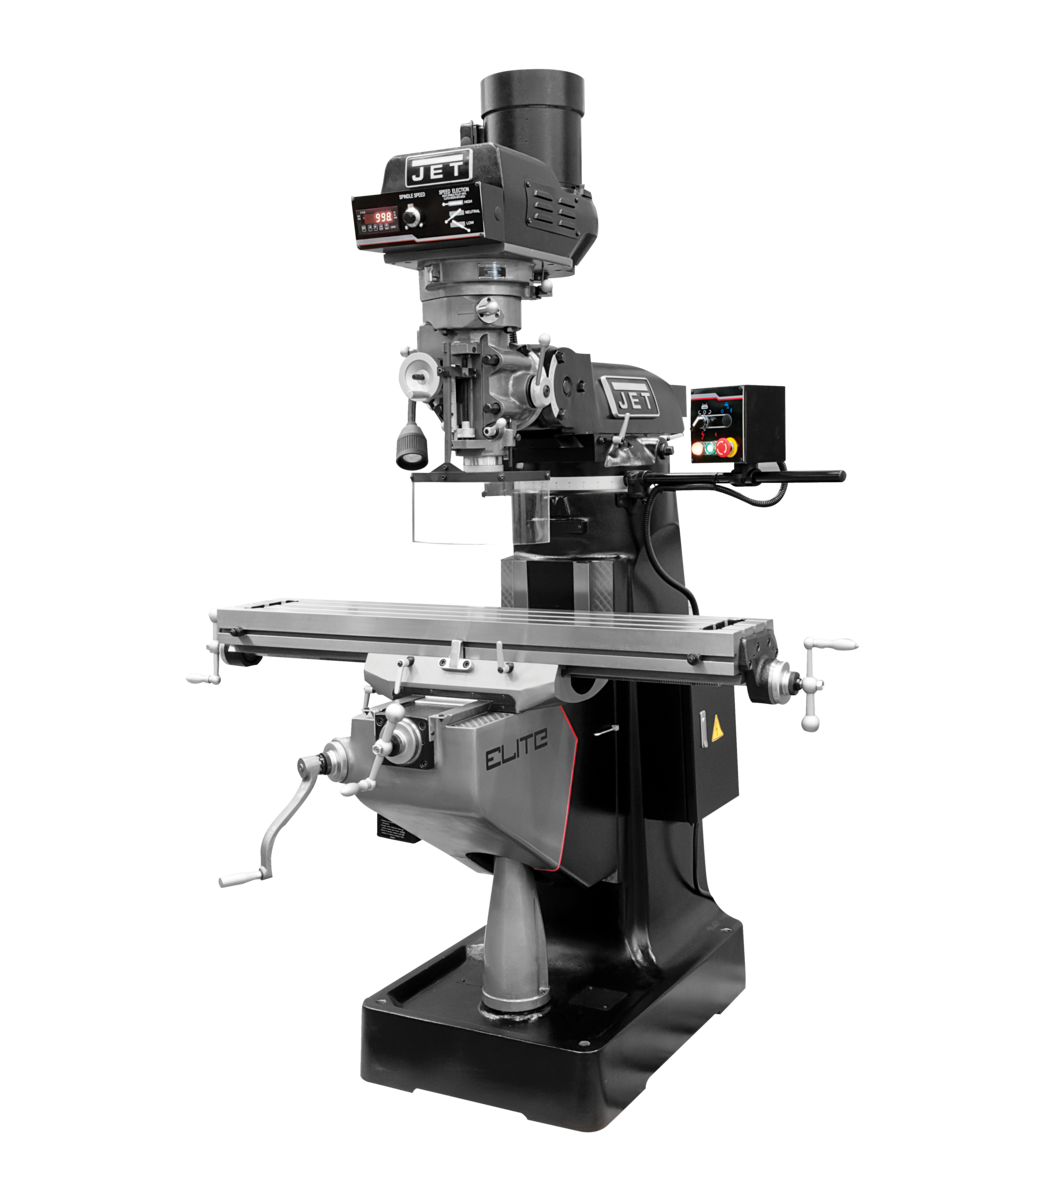 EVS-949 Mill with 3-Axis Newall DP700 (Knee) DRO and X-Axis JET Powerfeed and USA Made Air Draw Bar